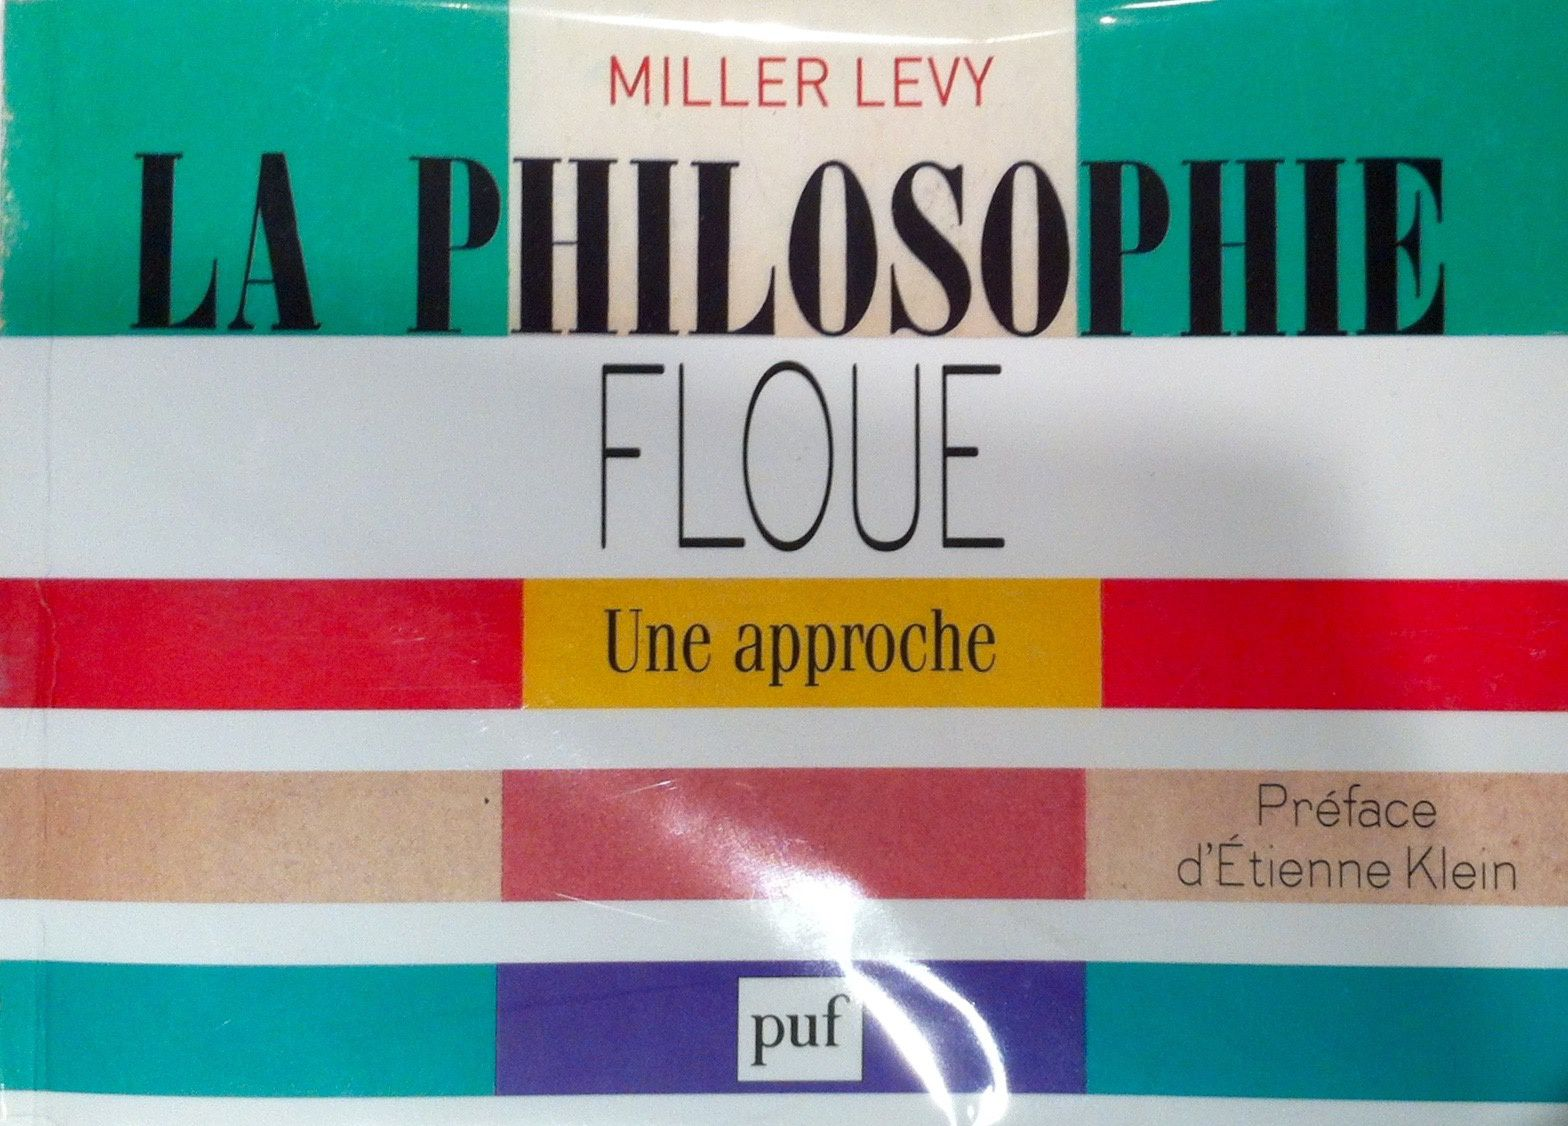 La philosophie  floue.